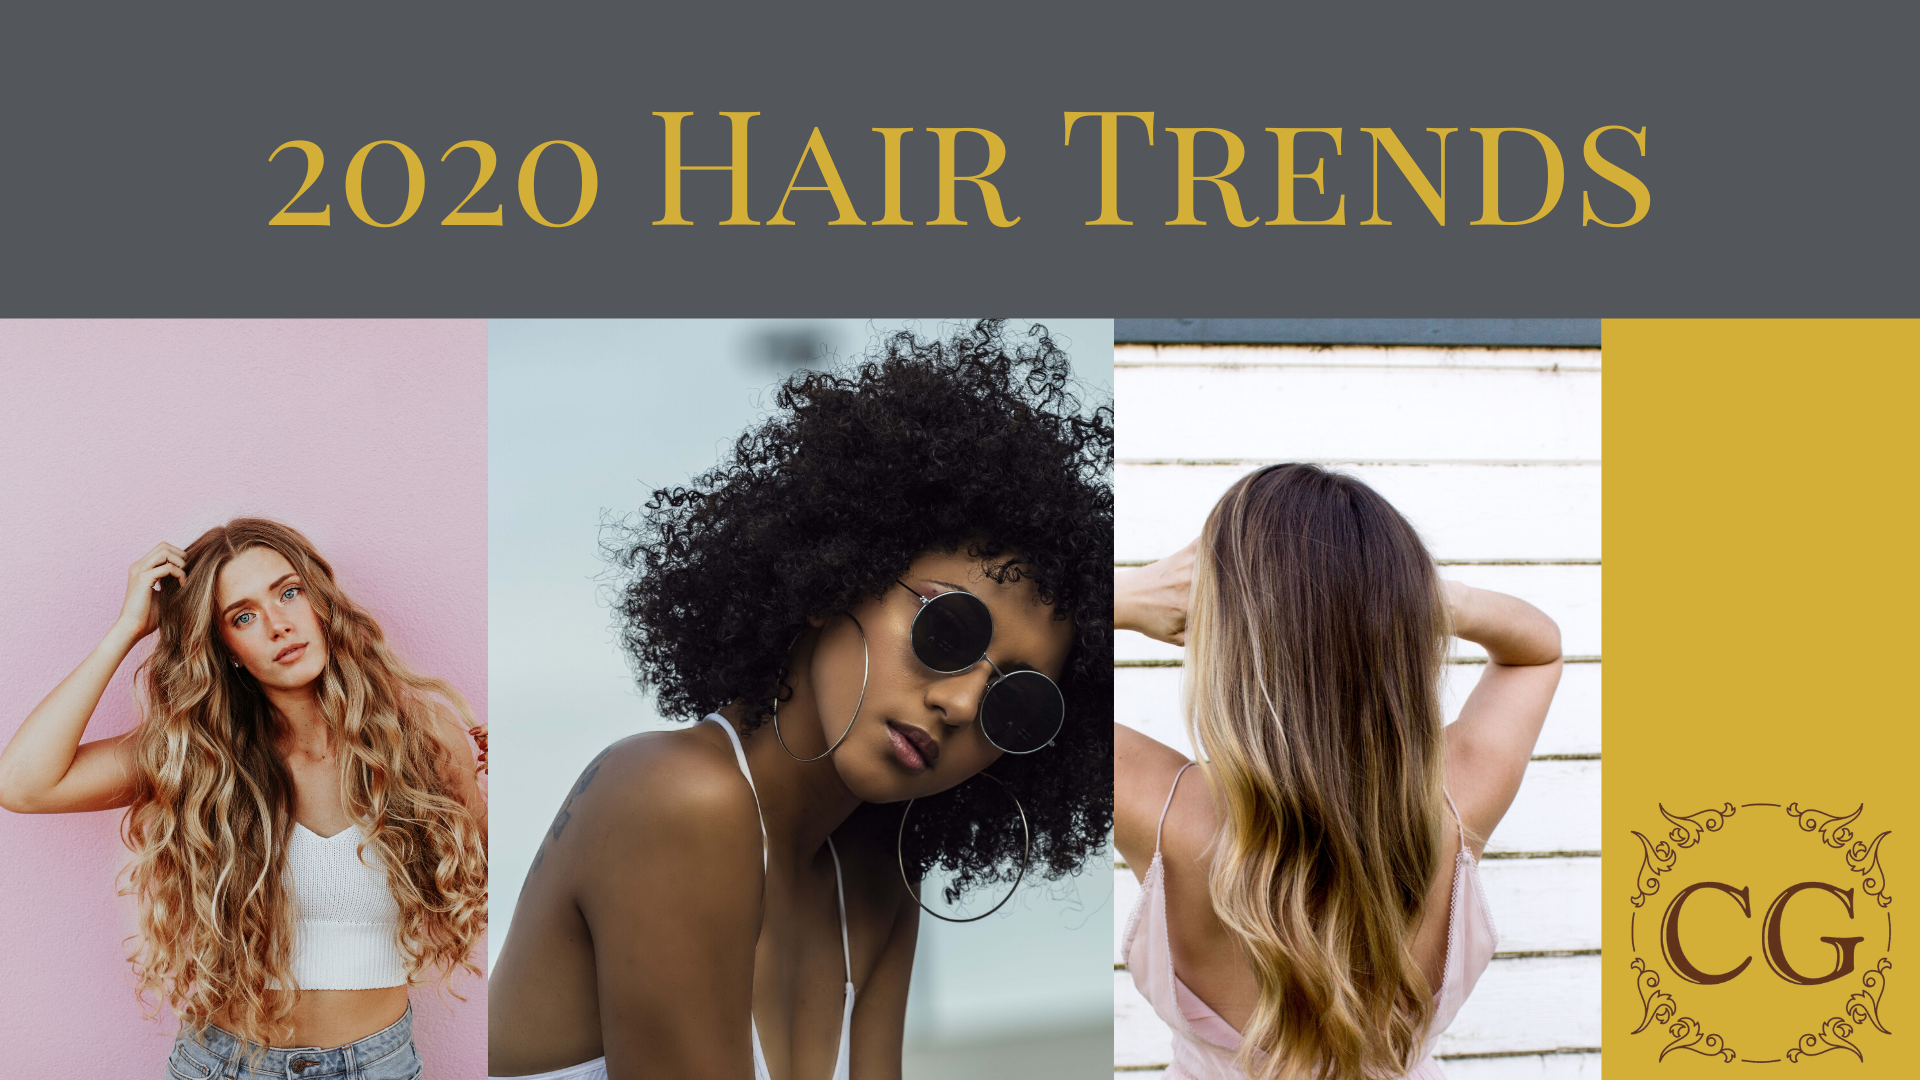 Hair Trends: A collage image of a woman with long wavy balayaged hair against a pink wall, a woman with natural hair and sunglasses against a blue sky and a woman with blonde balayage against a white wooden wall. Text reading '2020 hair trends' in gold against a grey background above and a gold coloured band with the Cutting Garden logo on the right.